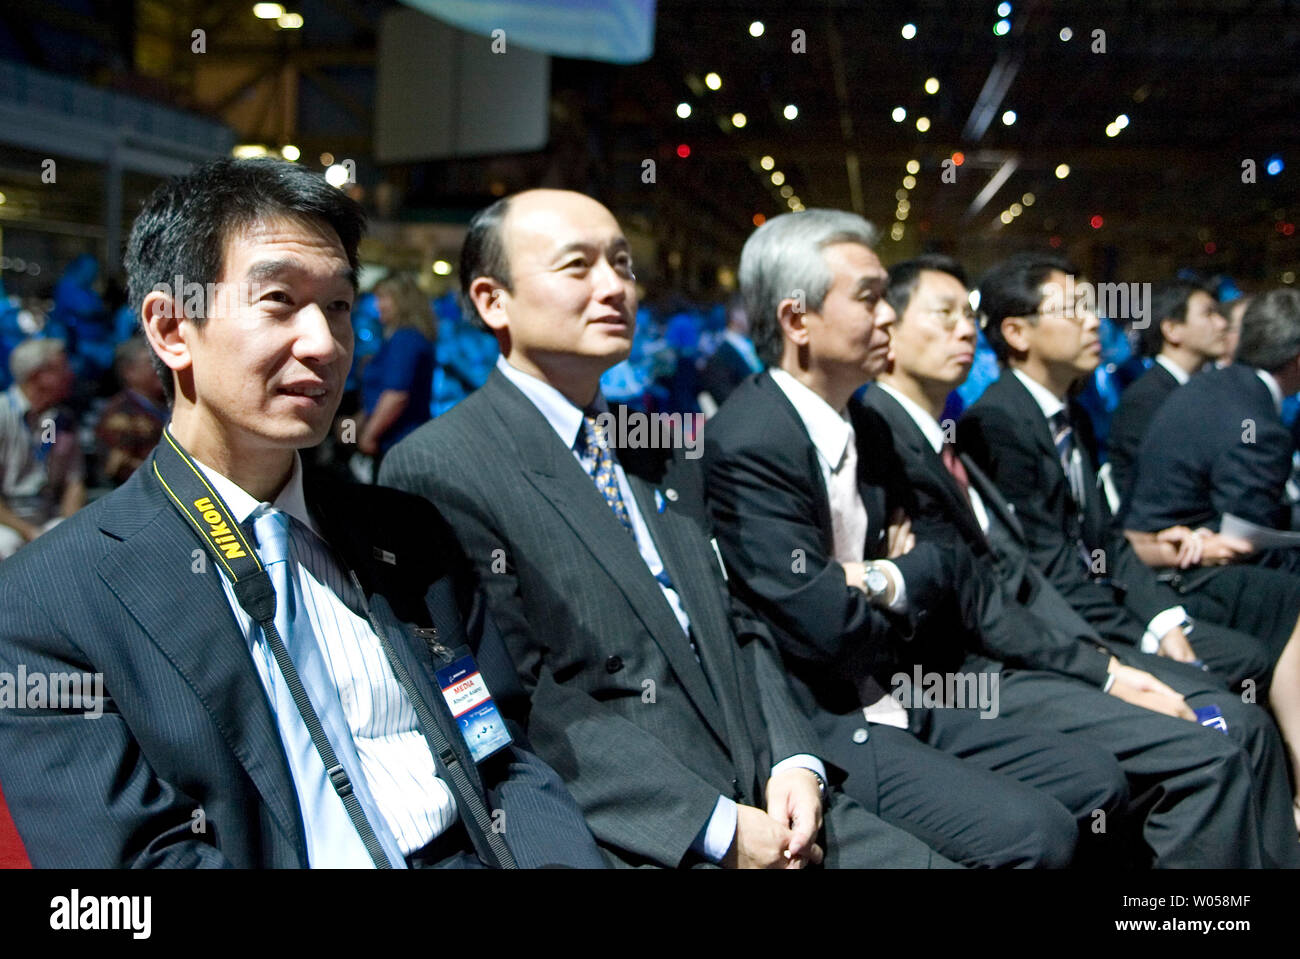 Japanese Global partners from Fuji, Kawasaki and Mitsubishi Heavy Industries attend Boeing's new 787 Dreamliner unveiling at its Everett, Washington plant on July 8, 2007. Over 15,000 Boeing employees, retired and present, family, friends and worldwide media attended the extravaganza as Boeing unveiled its first commercial plane since 1994. (UPI Photo/Jim Bryant) Stock Photo